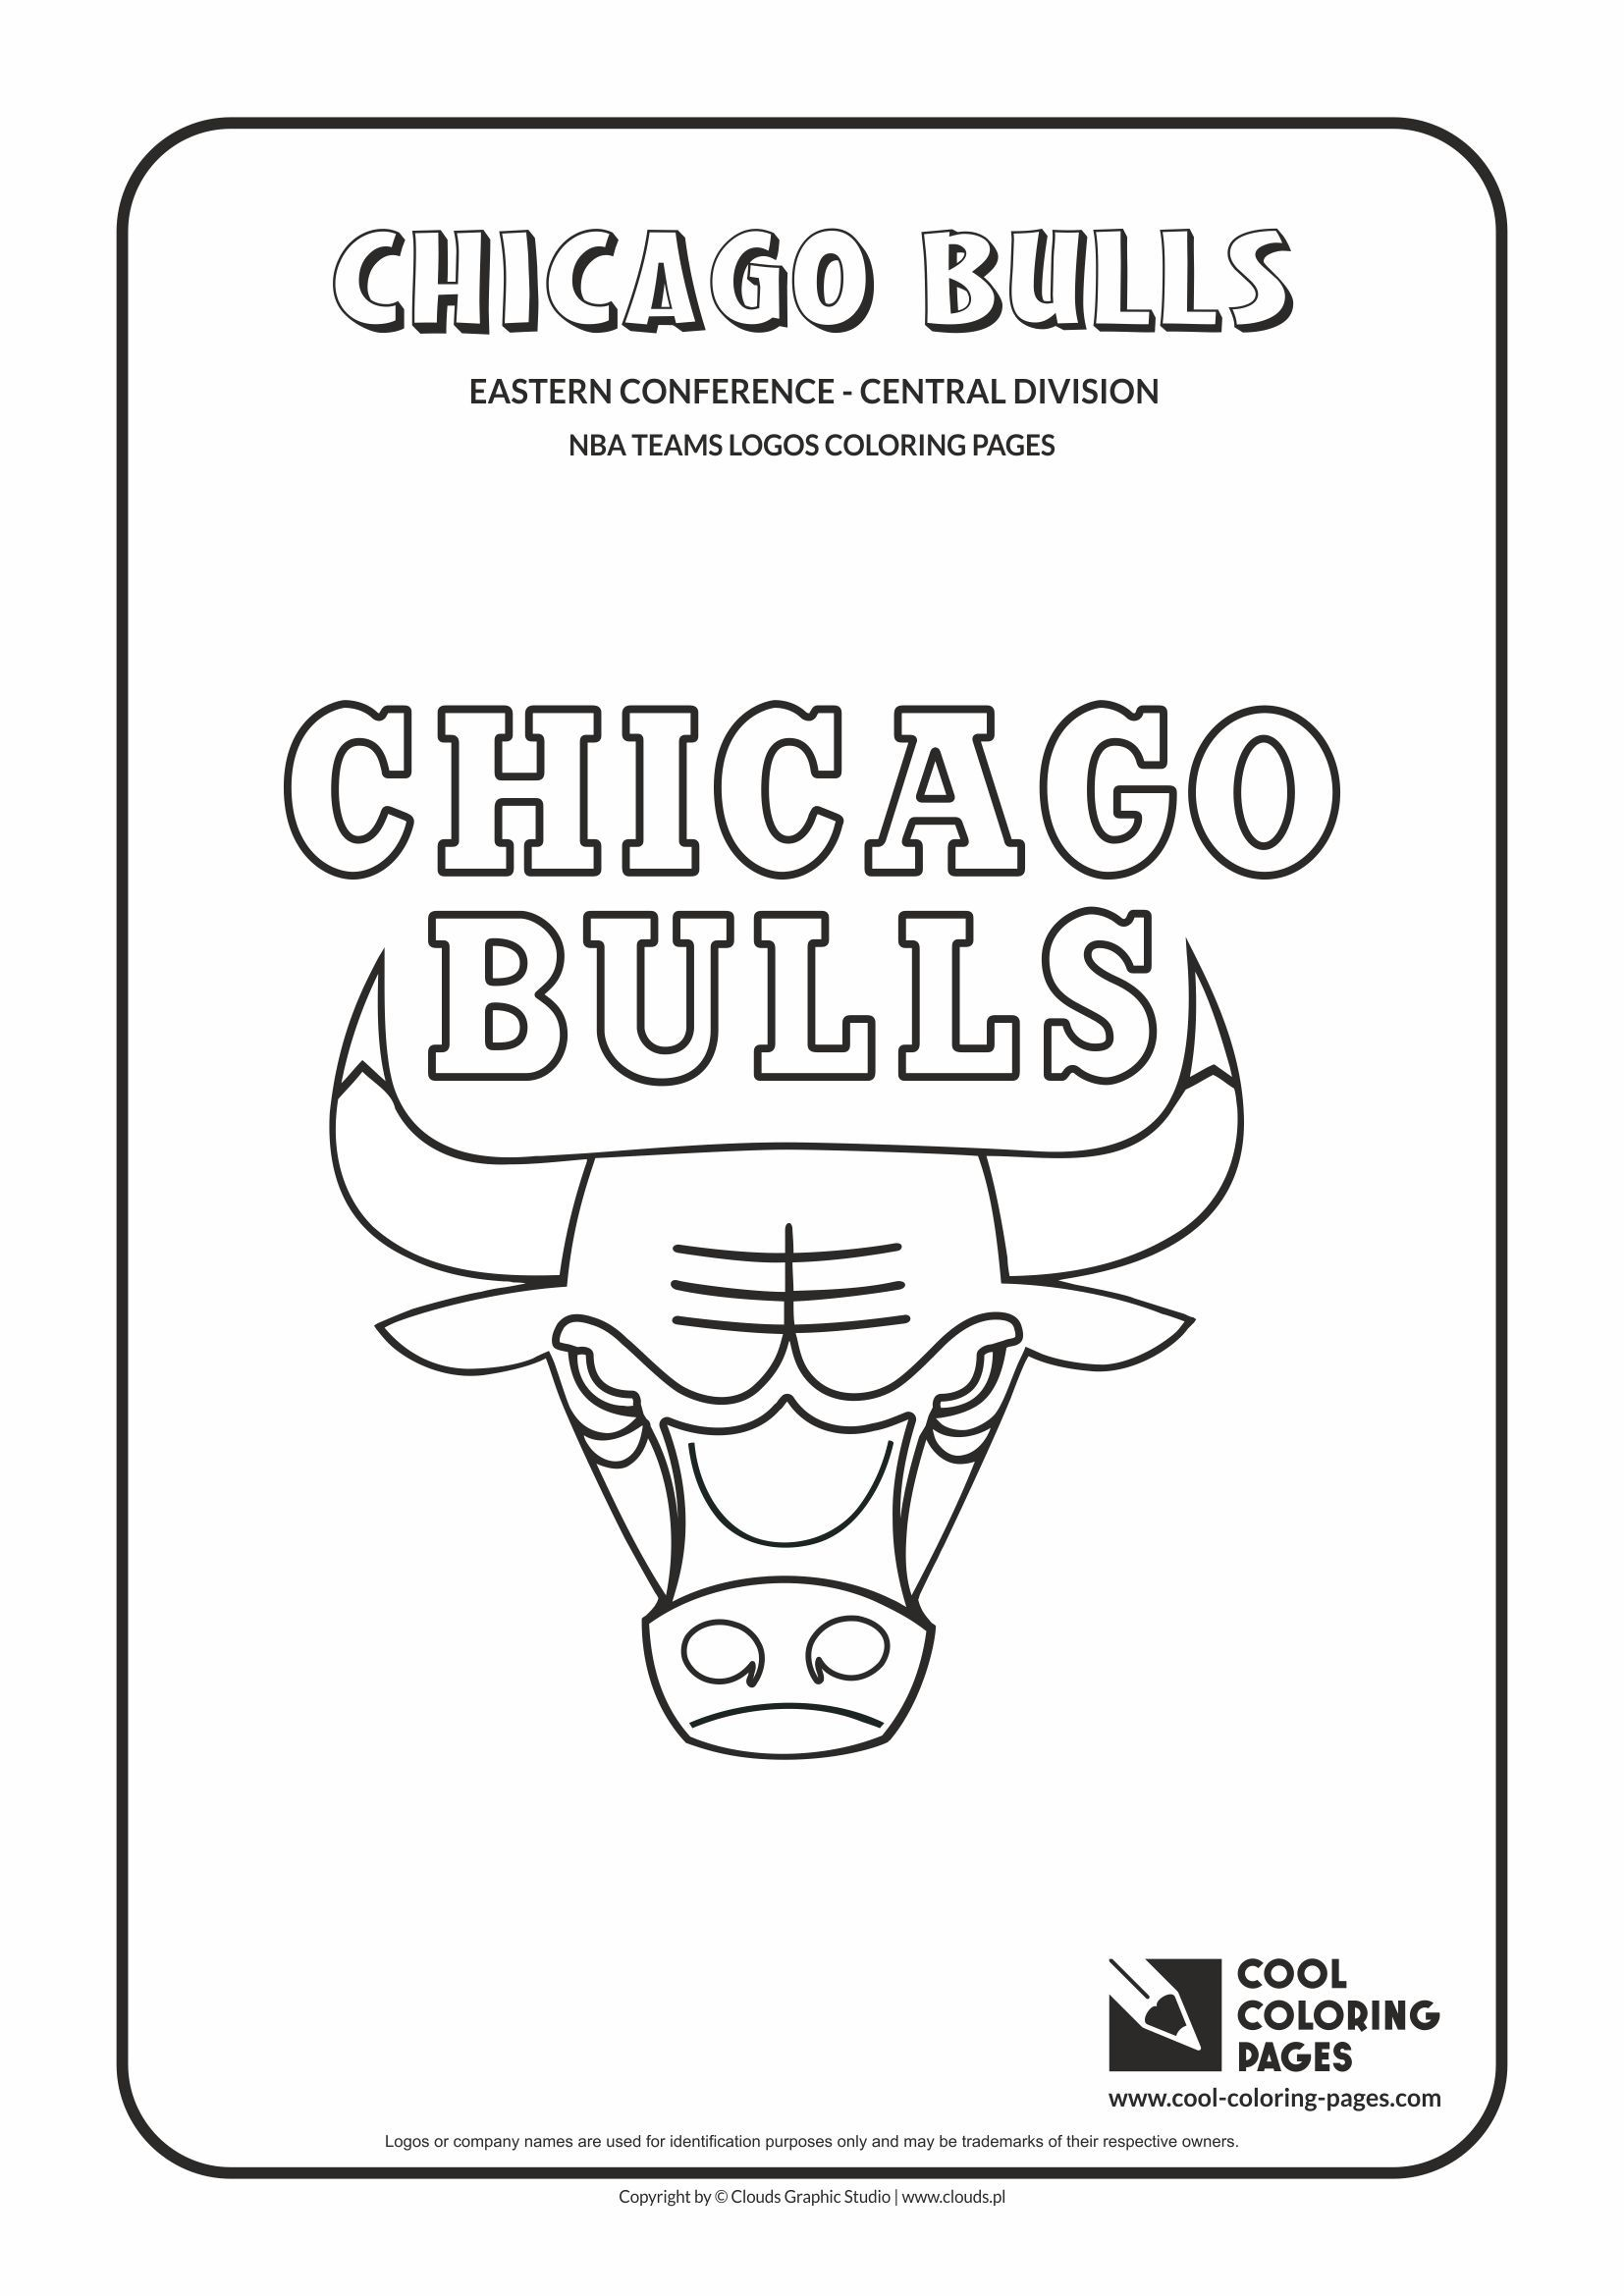 Cool Coloring Pages Nba Teams Logos Chicago Bulls Logo